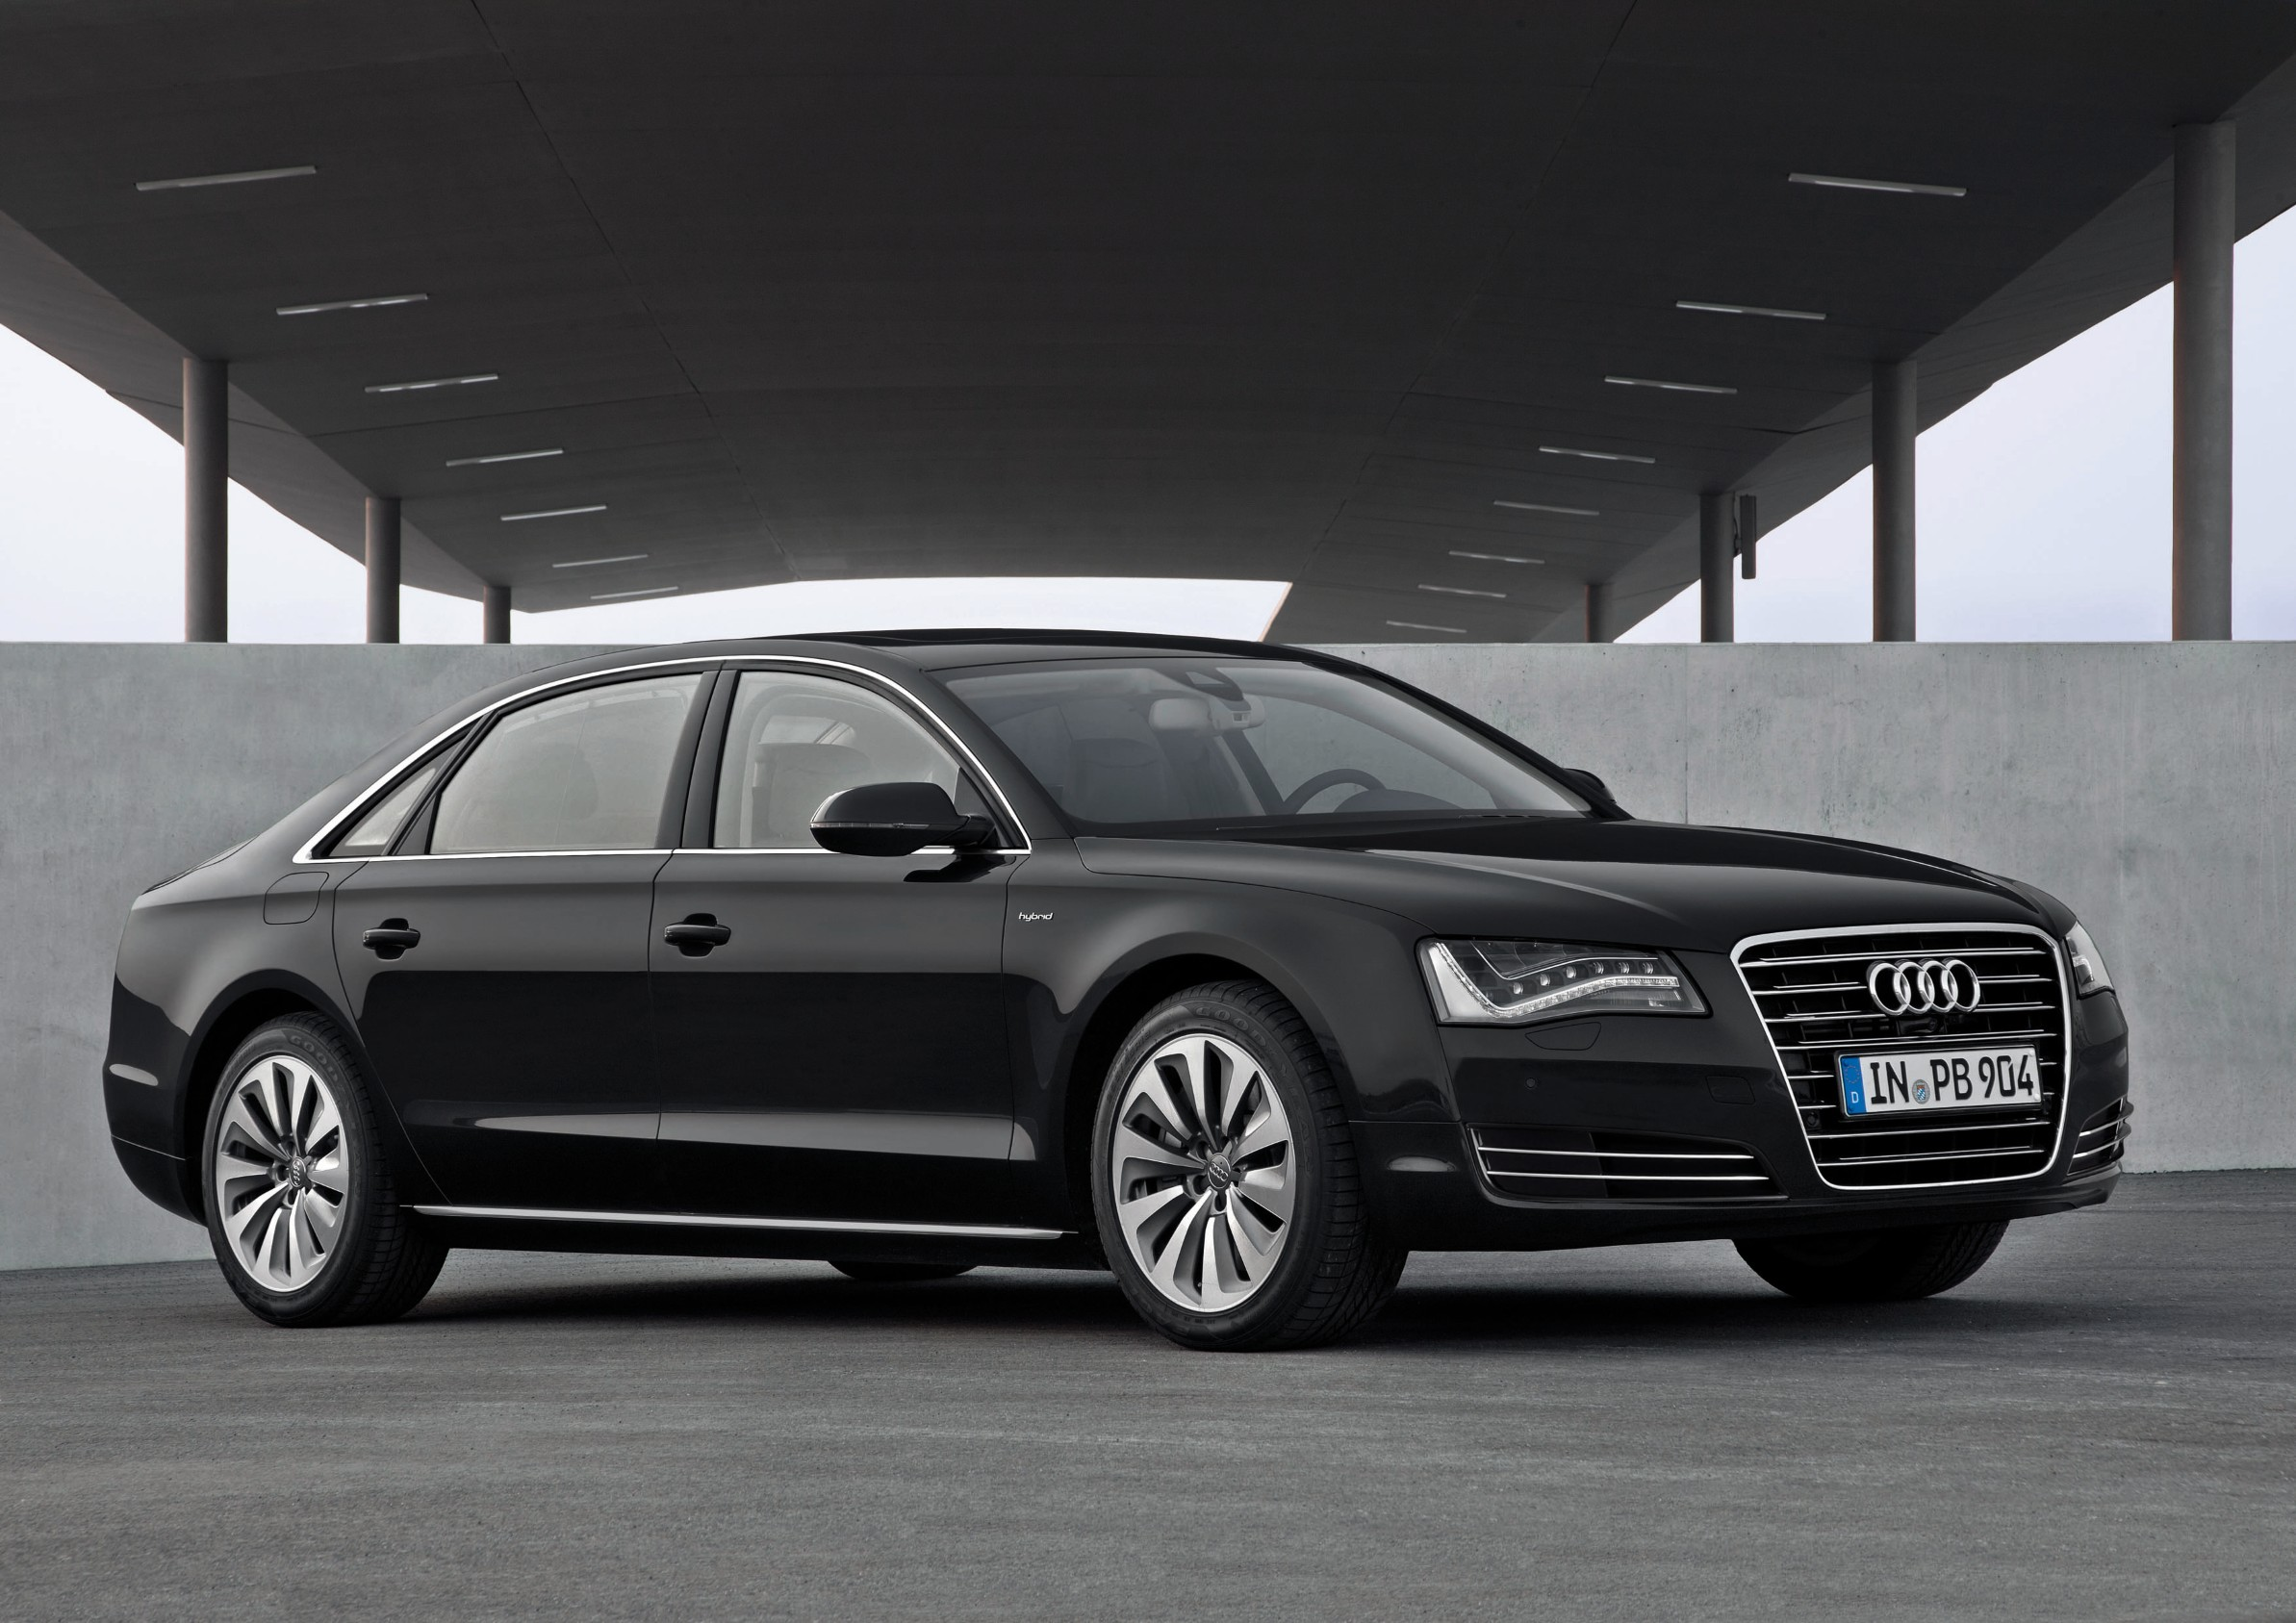 extended audi cars sale top for limousine speed